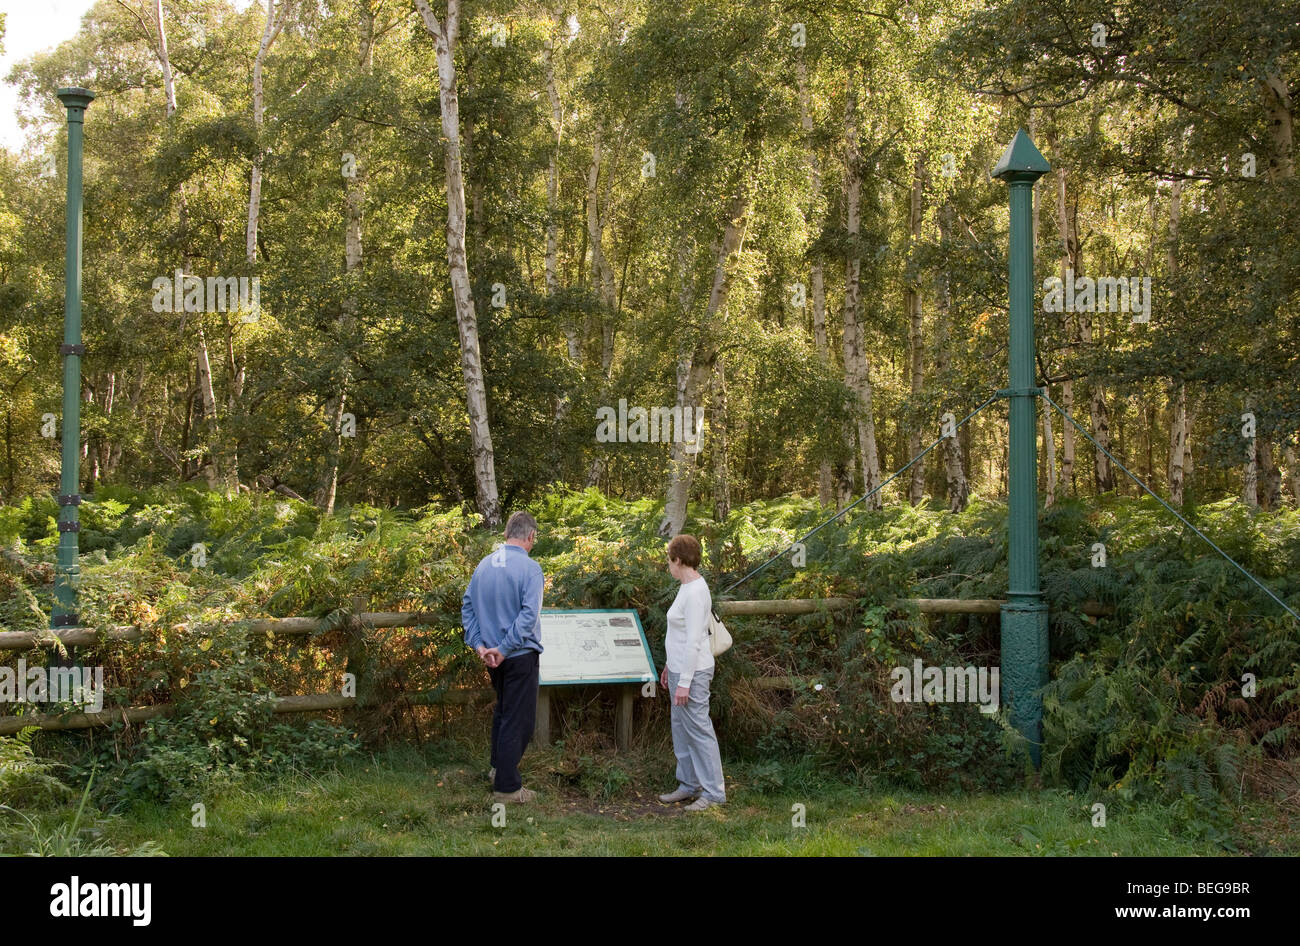 Visitors reading the information board relating to the cast iron columns at Holme Fen Nature Reserve, Cambridgeshire. - Stock Image